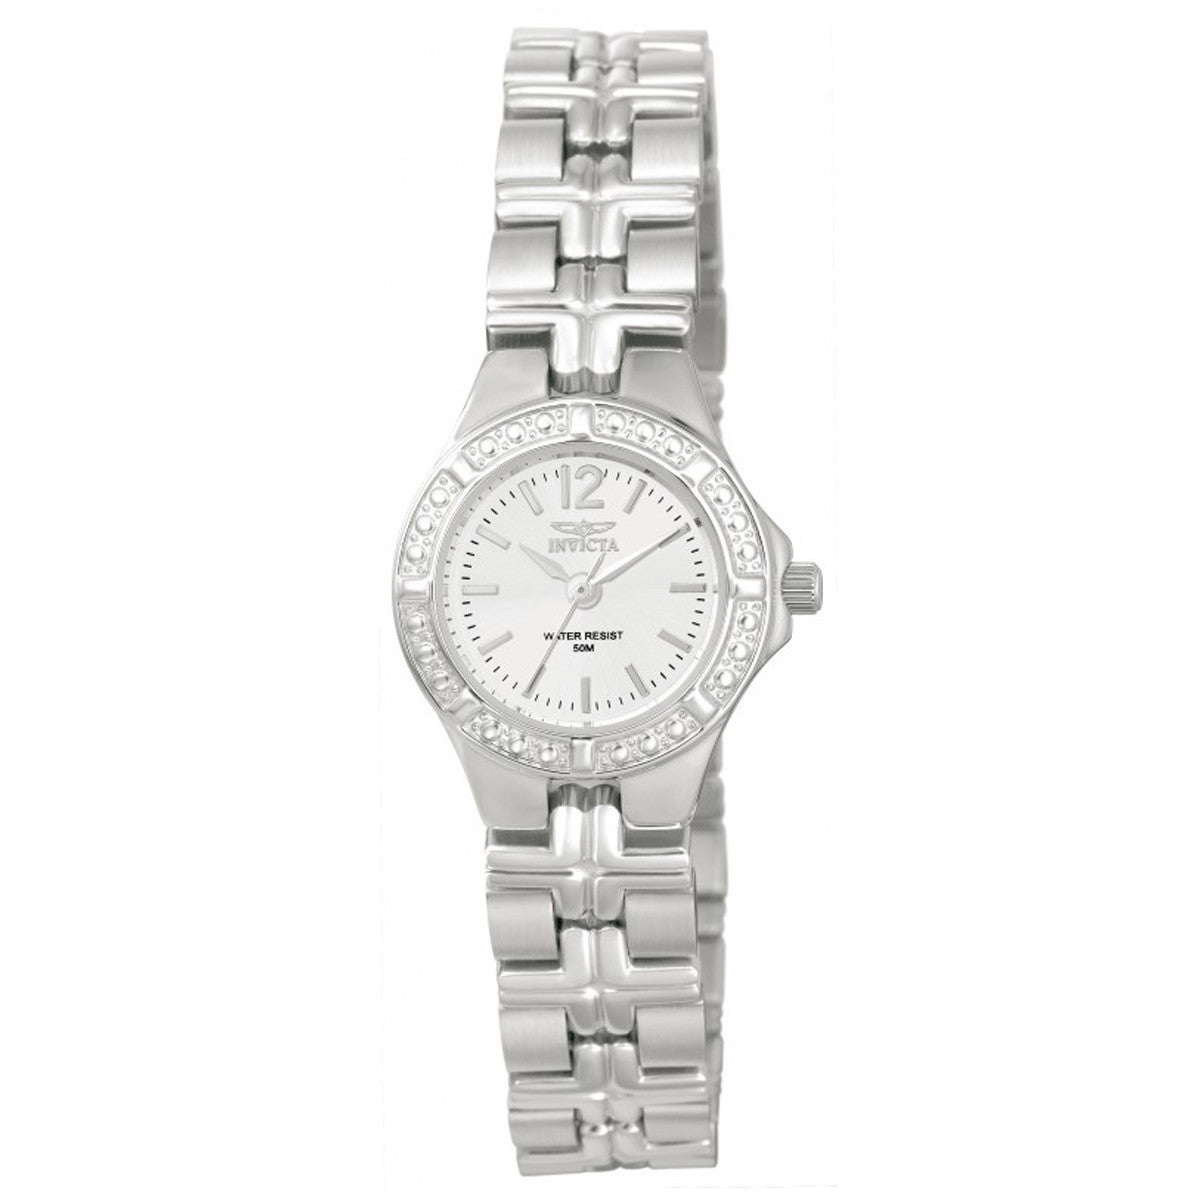 Invicta 0129 Women's Wildflower White Dial Stainless Steel Bracelet Watch